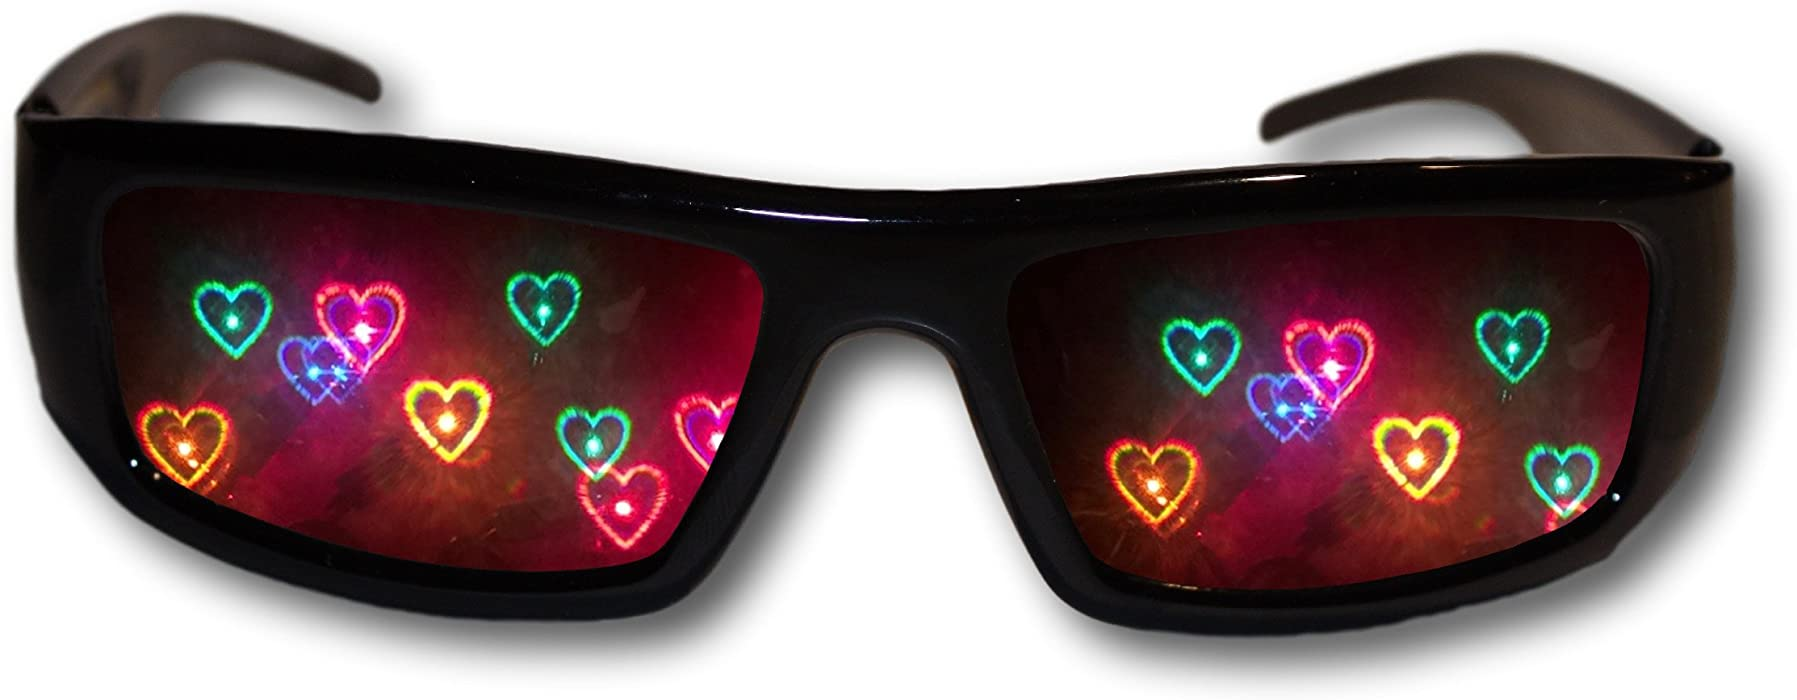 2bc95561046 Heart Diffraction Glasses - See Hearts! Rave Glasses  Amazon.co.uk ...